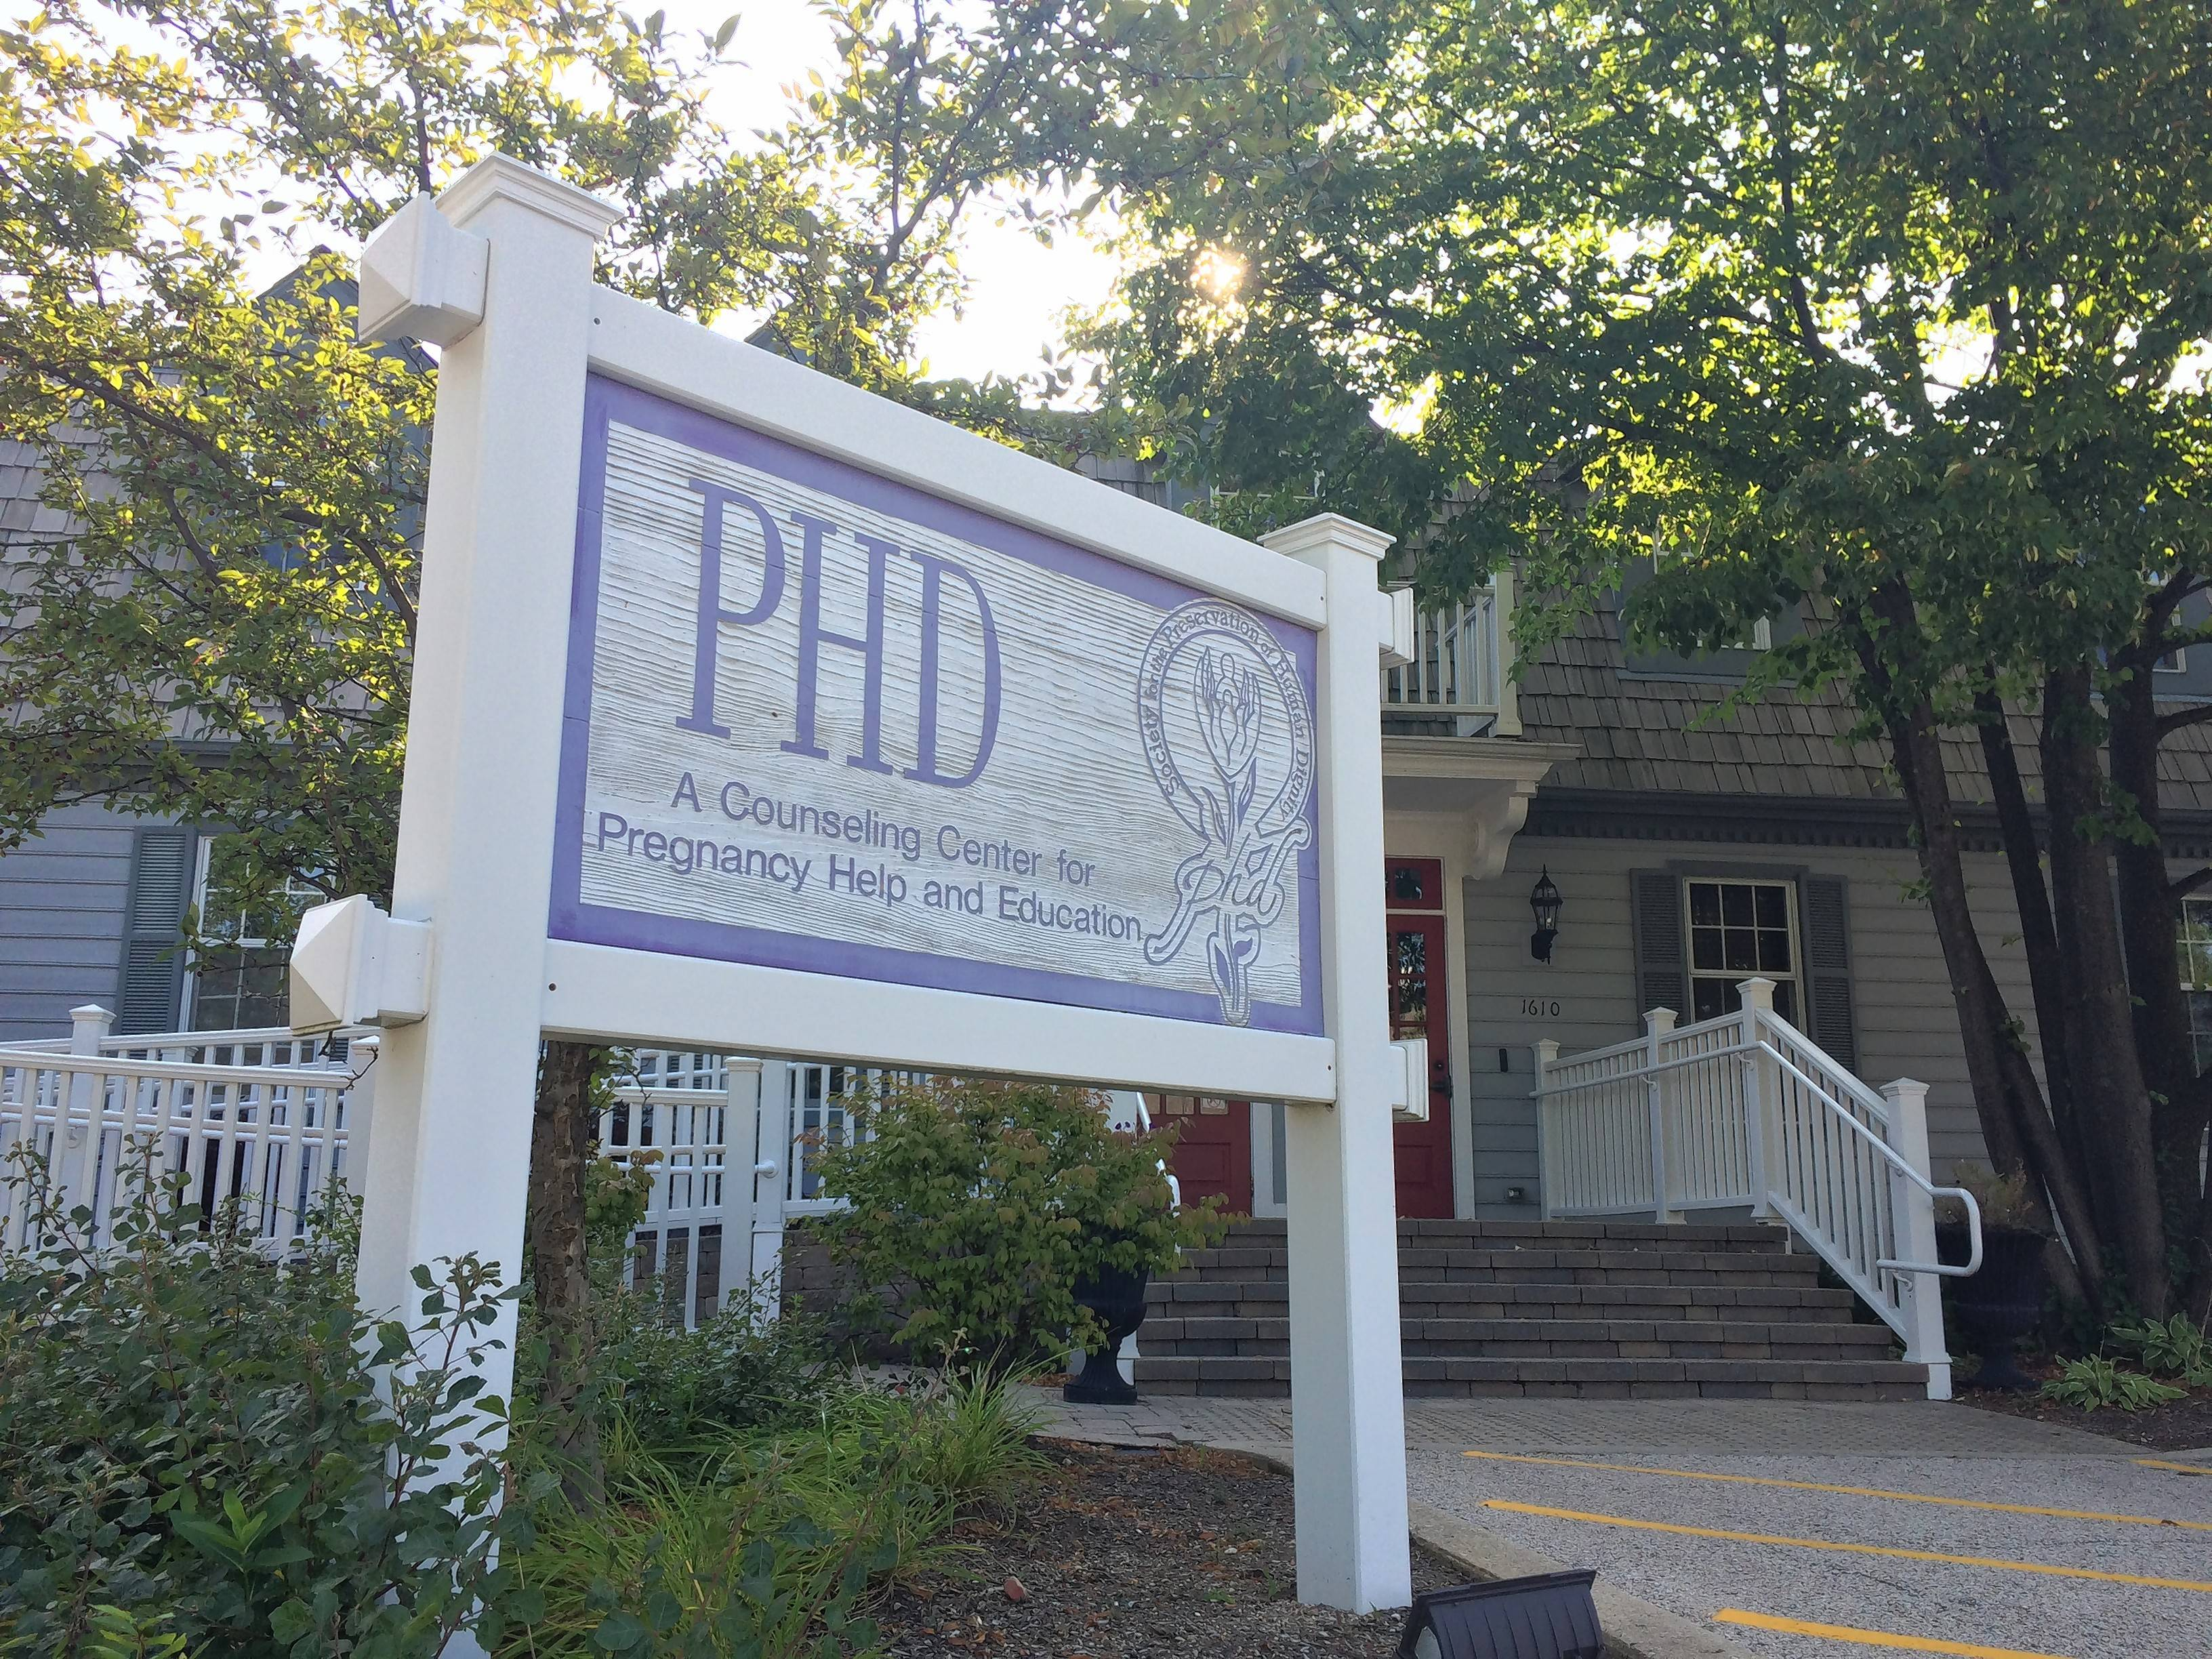 Lack of money has led to the closure of PHD Counseling Center/Society for the Preservation of Human Dignity in Inverness. Originally in Palatine, the nonprofit agency served women and provided maternal health and well-being services to clients.